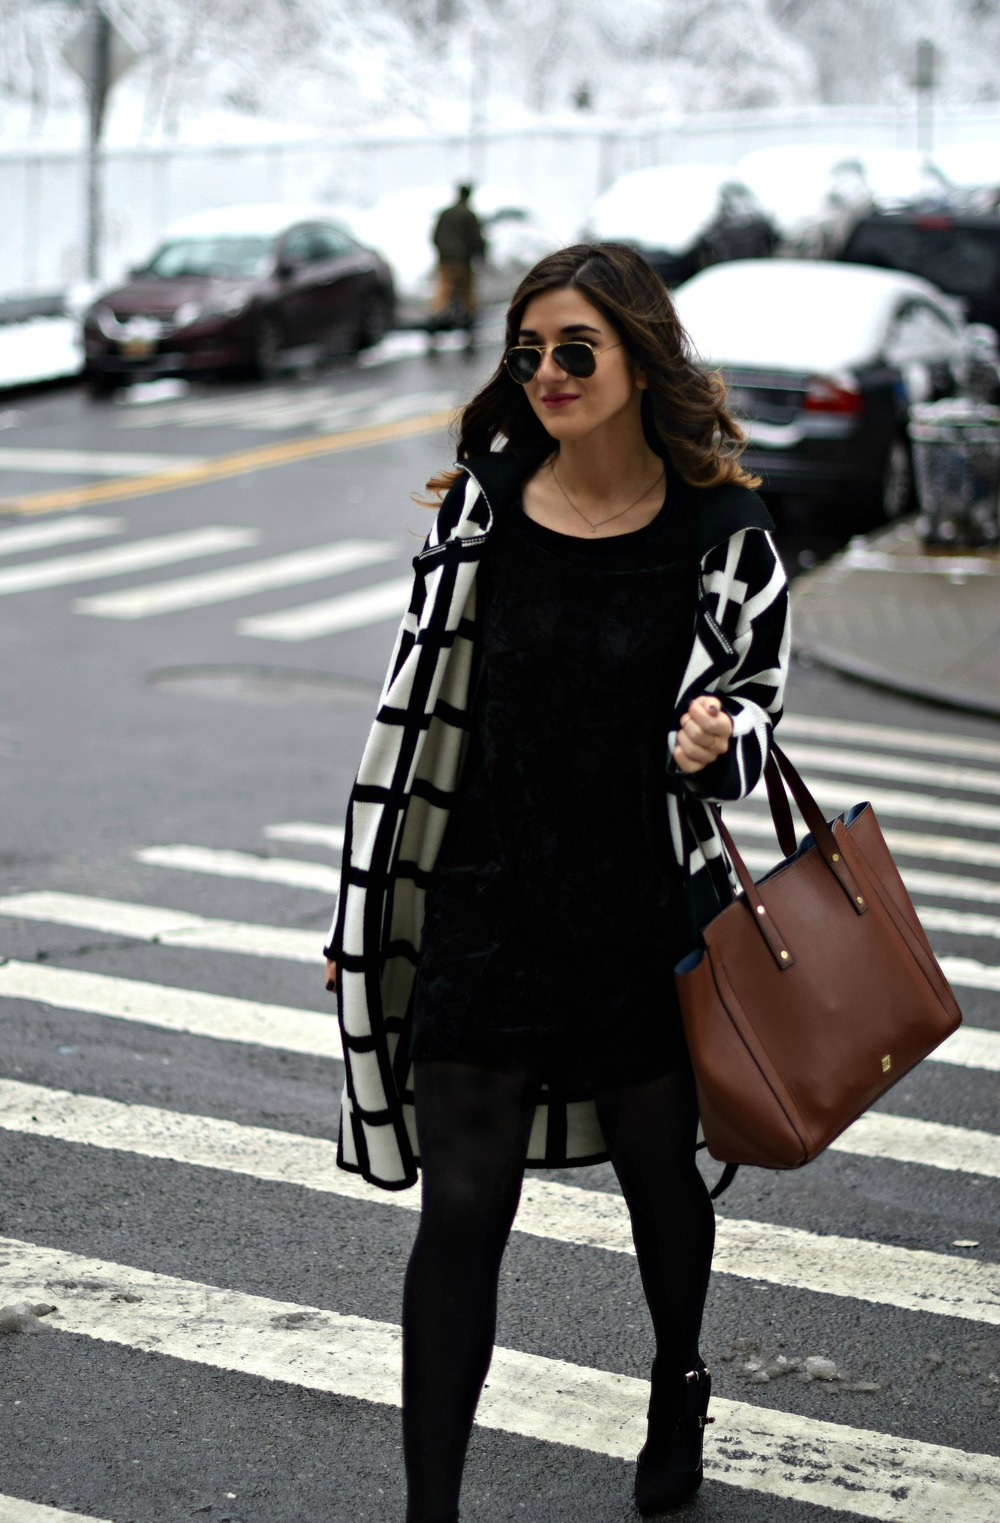 Black and White Windowpane Sweater Trescool Louboutins & Love Fashion Blog Esther Santer NYC Street Blogger Winter Wear Shop Cozy Layers Zara Black Heels Ivanka Trump Soho Tote Bag Velvet Dress OOTD Outfit Inspo Beauty Model Hair Sunglasses Photoshoot.jpg